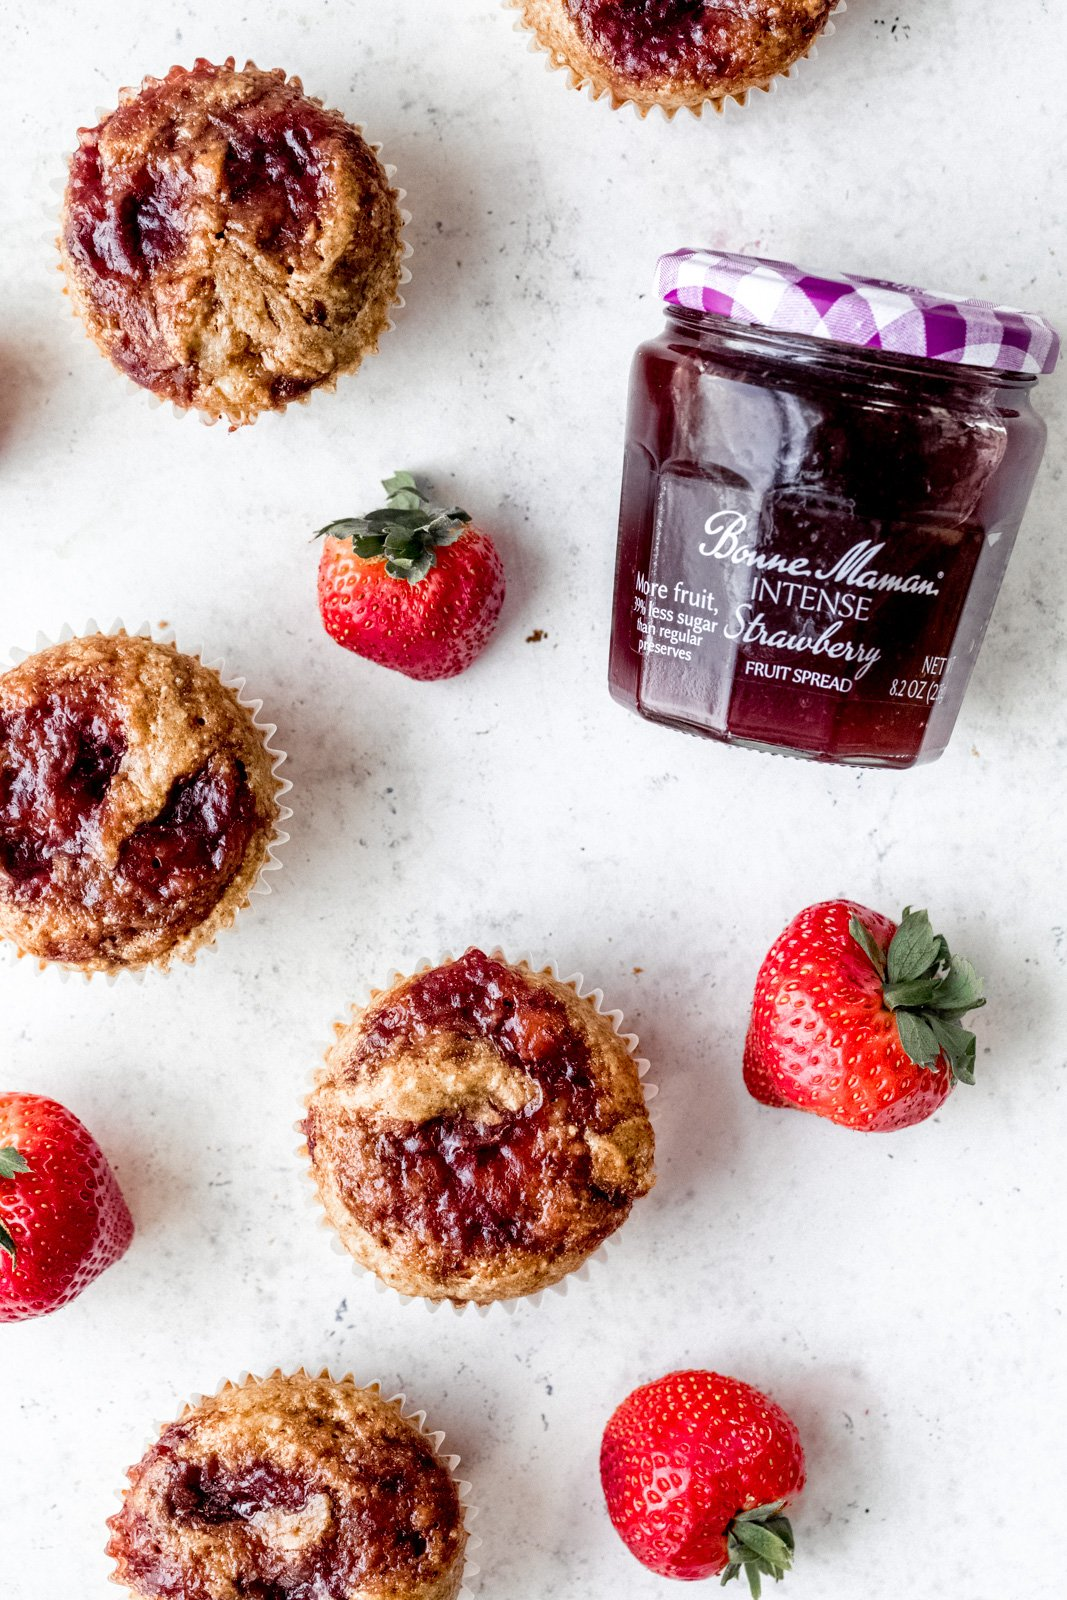 gluten free strawberry almond butter muffins next to a jar of strawberry fruit spread